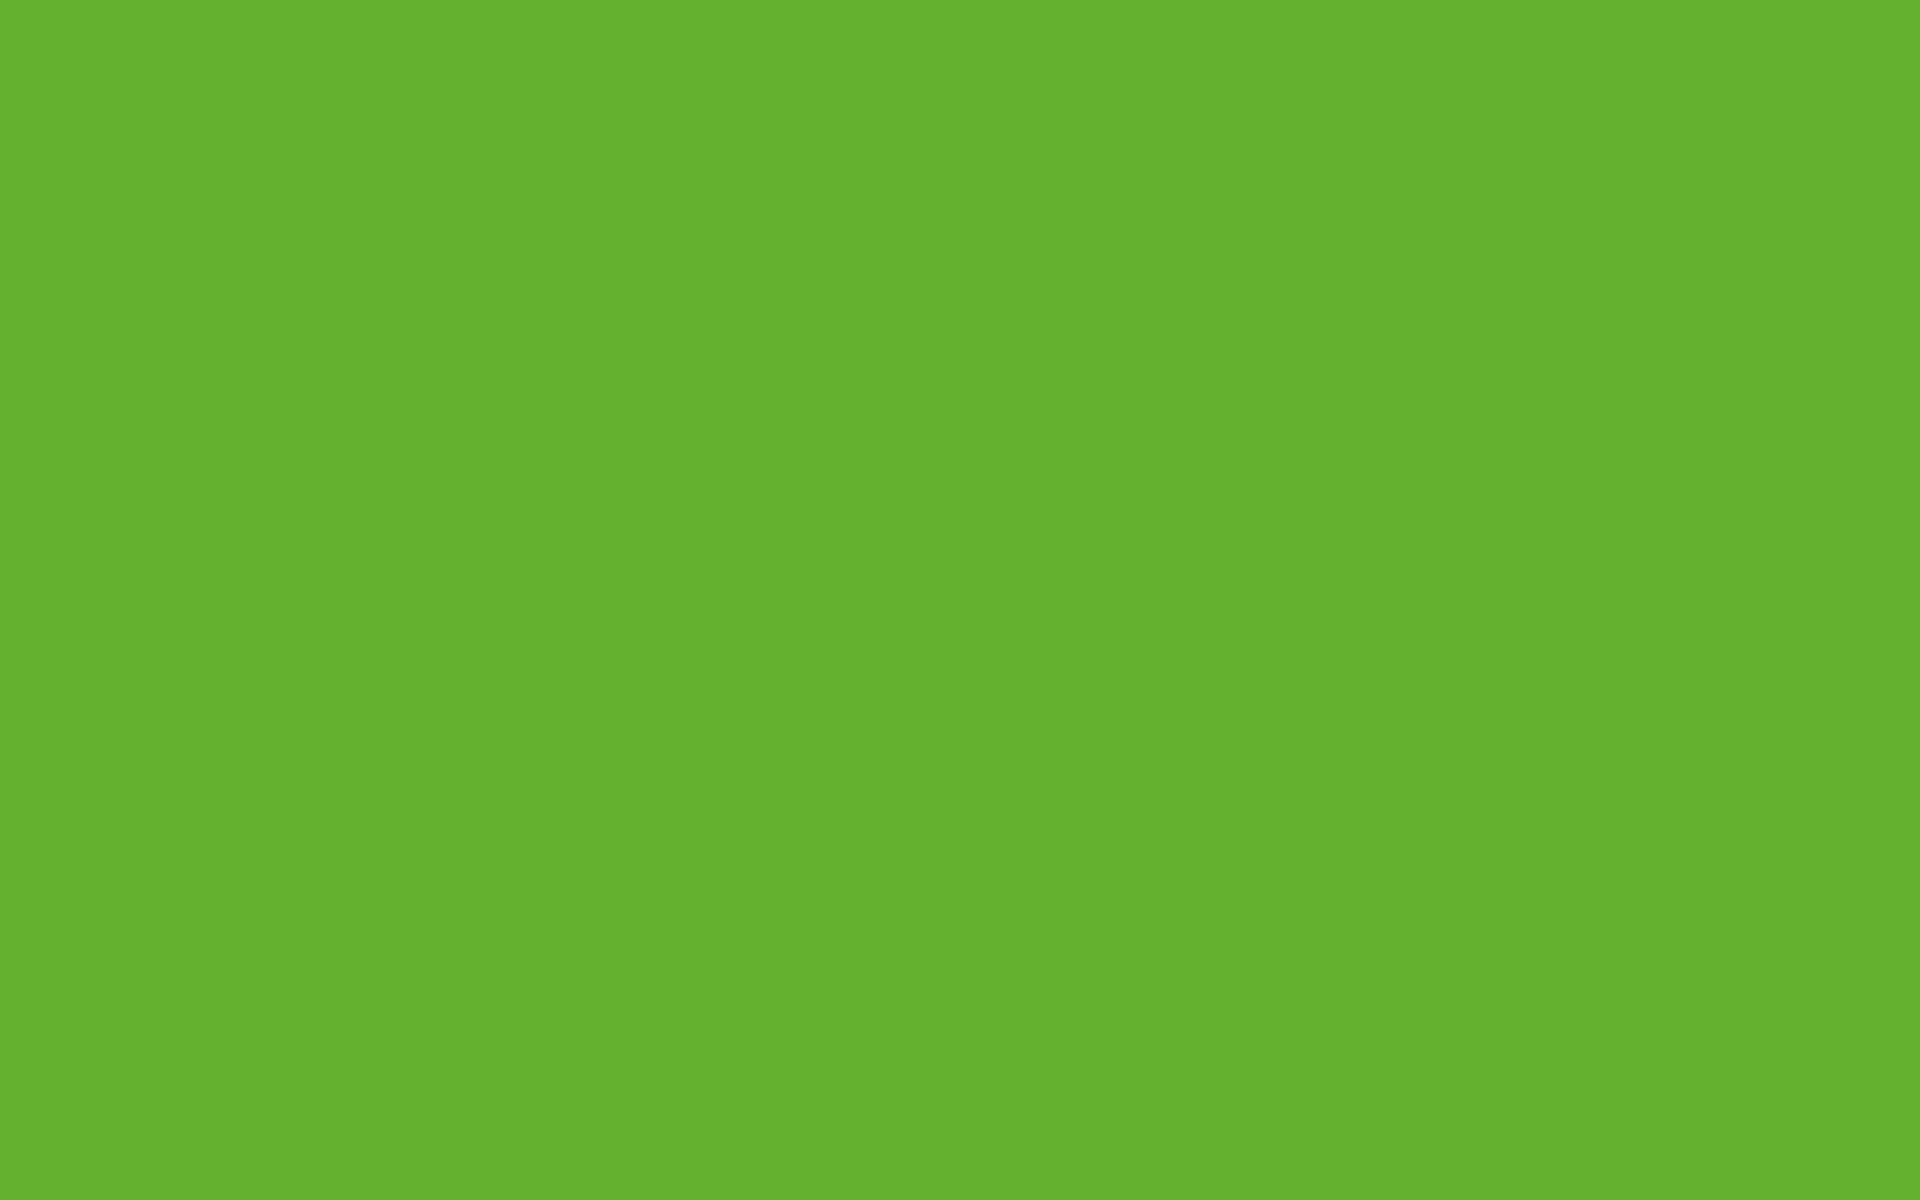 1920x1200 Green RYB Solid Color Background